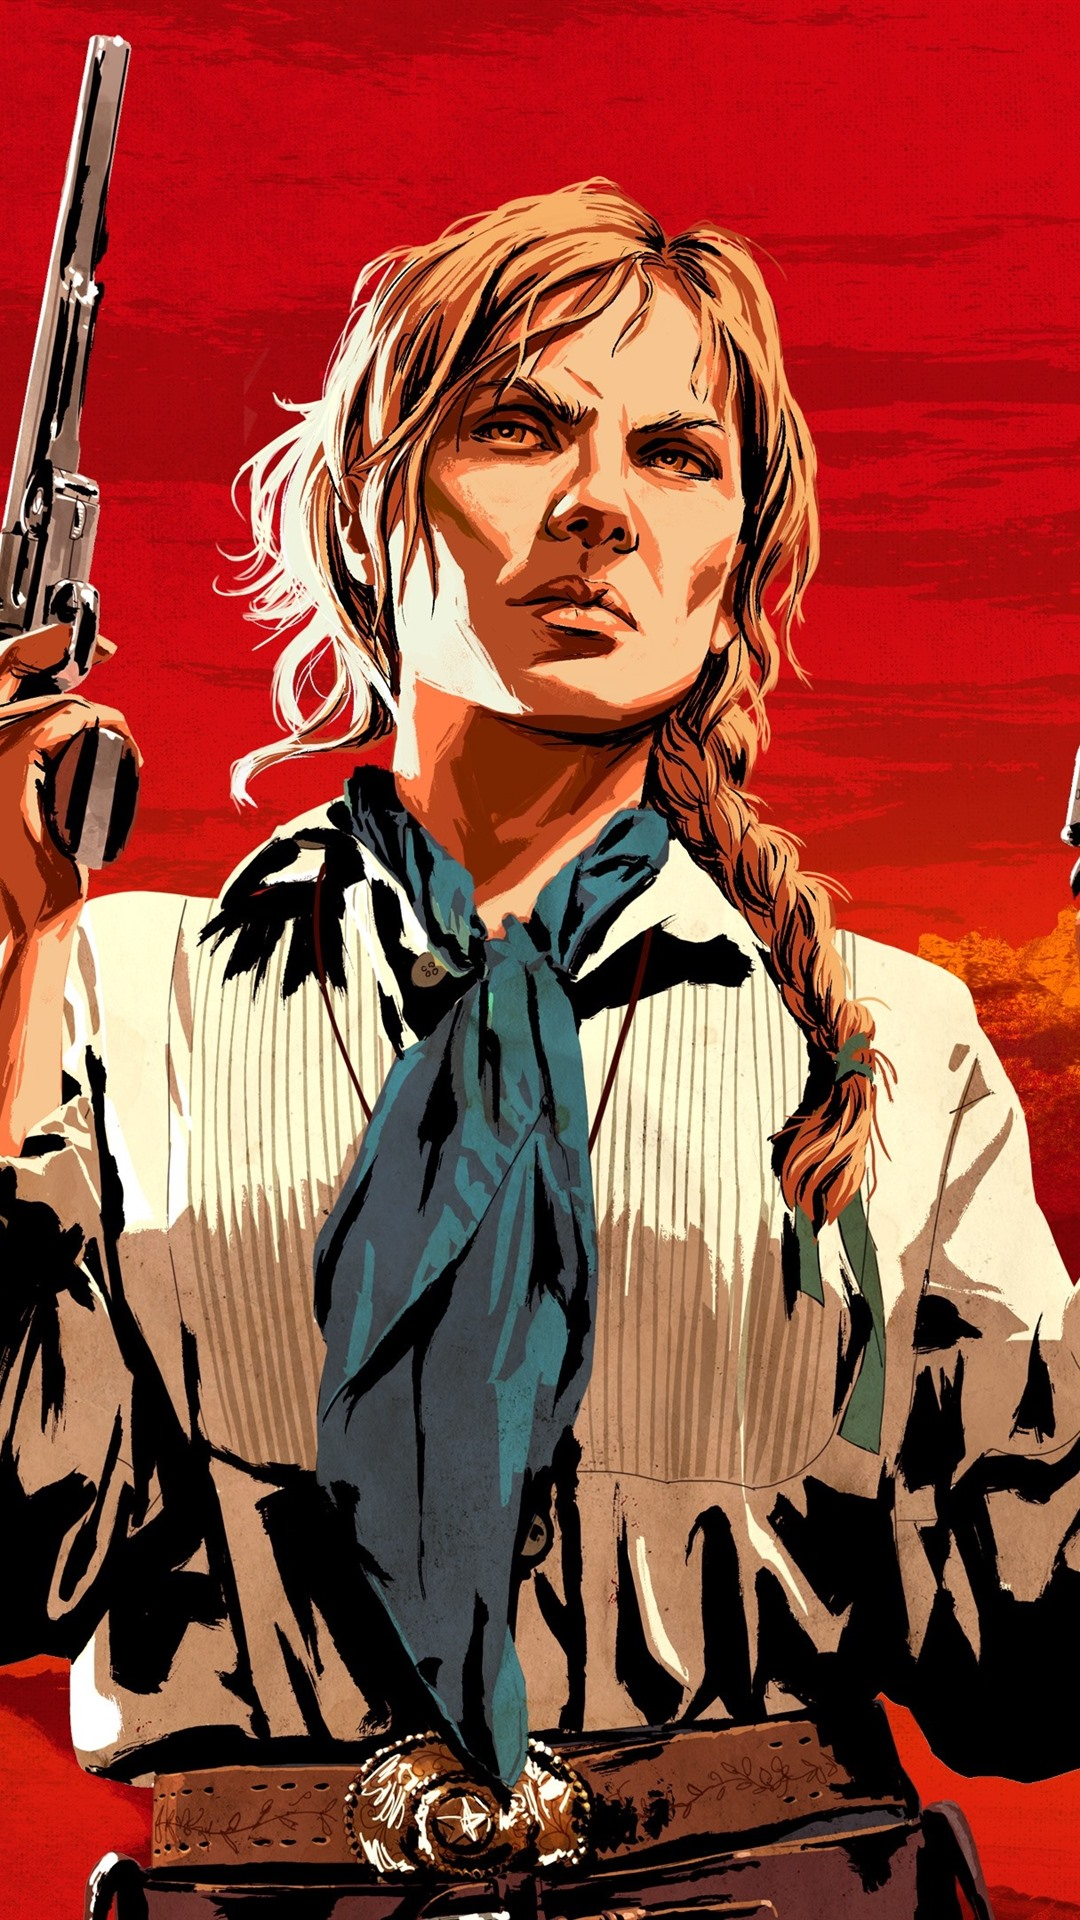 Red Dead Redemption 2 Guns 1080x1920 Iphone 8 7 6 6s Plus Wallpaper Background Picture Image